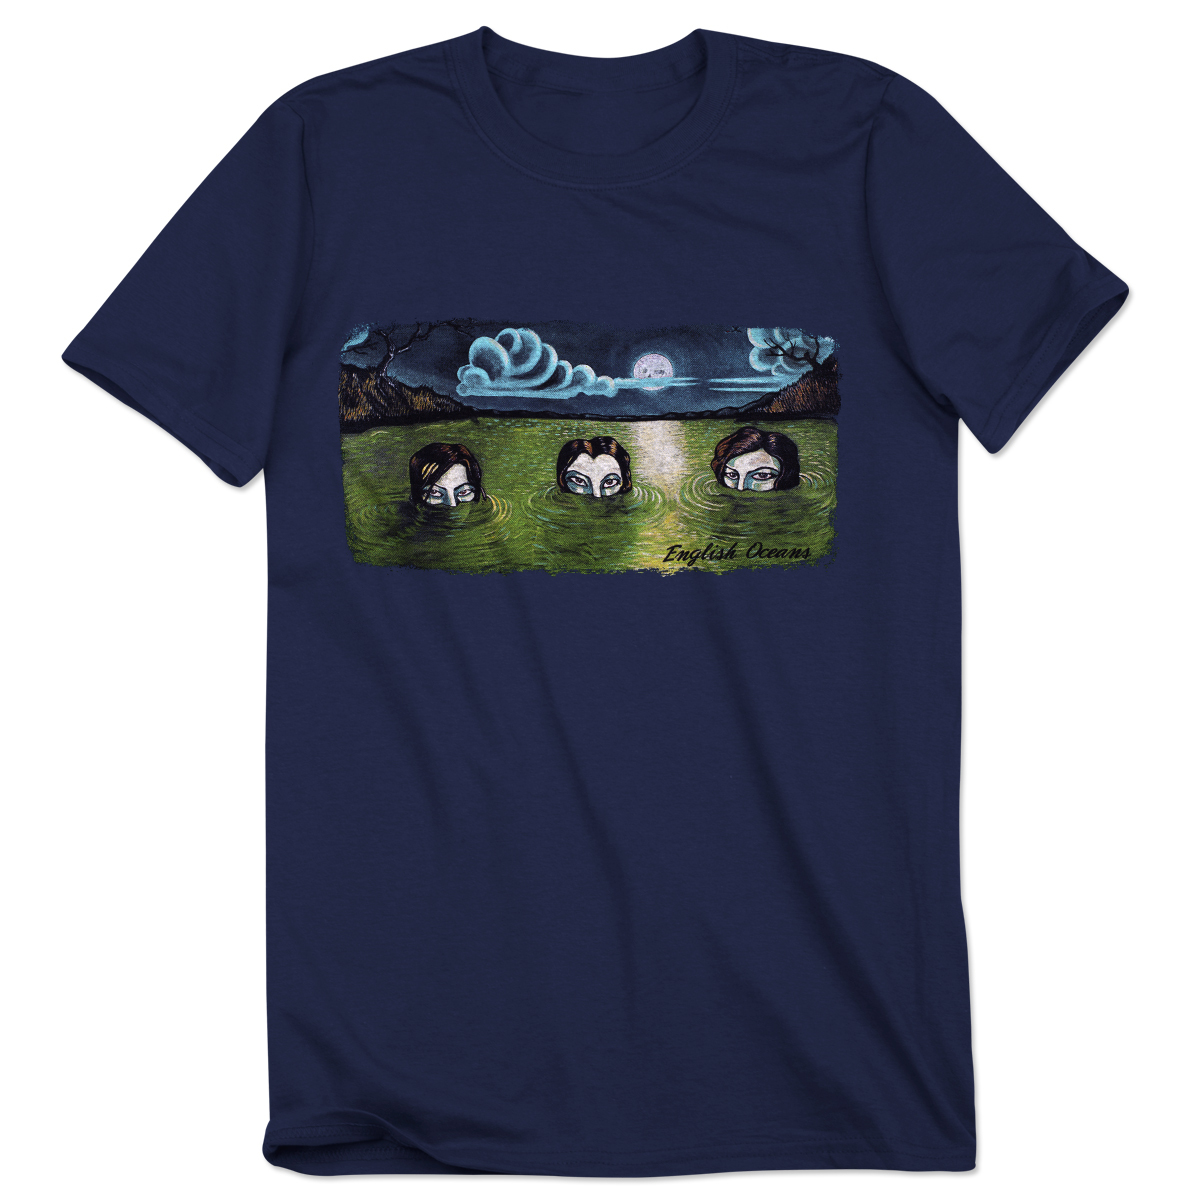 English Oceans T-Shirt